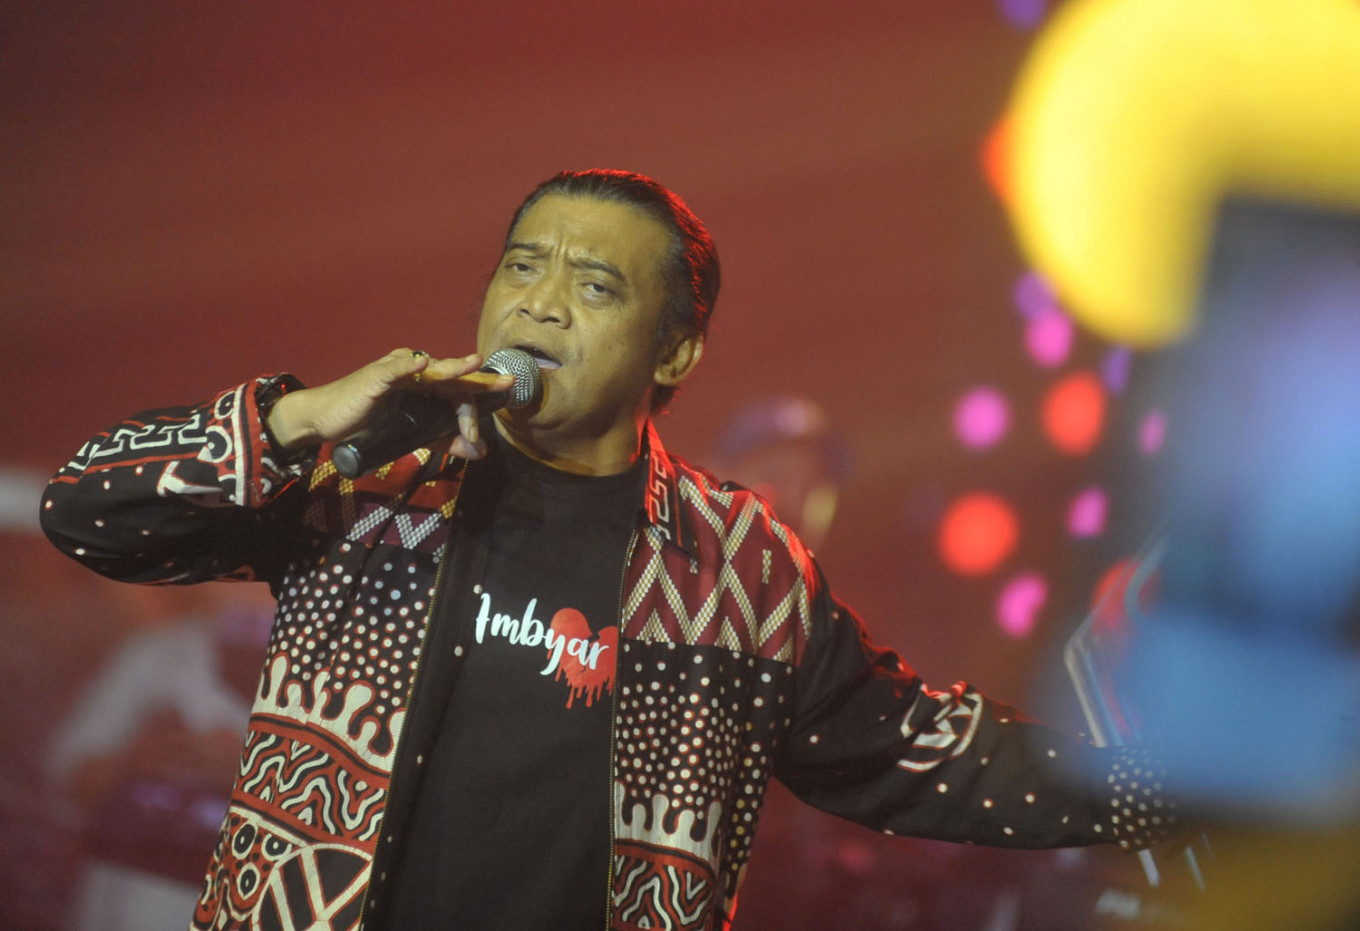 More than 29,000 people sign petition for Didi Kempot statue in Surakarta